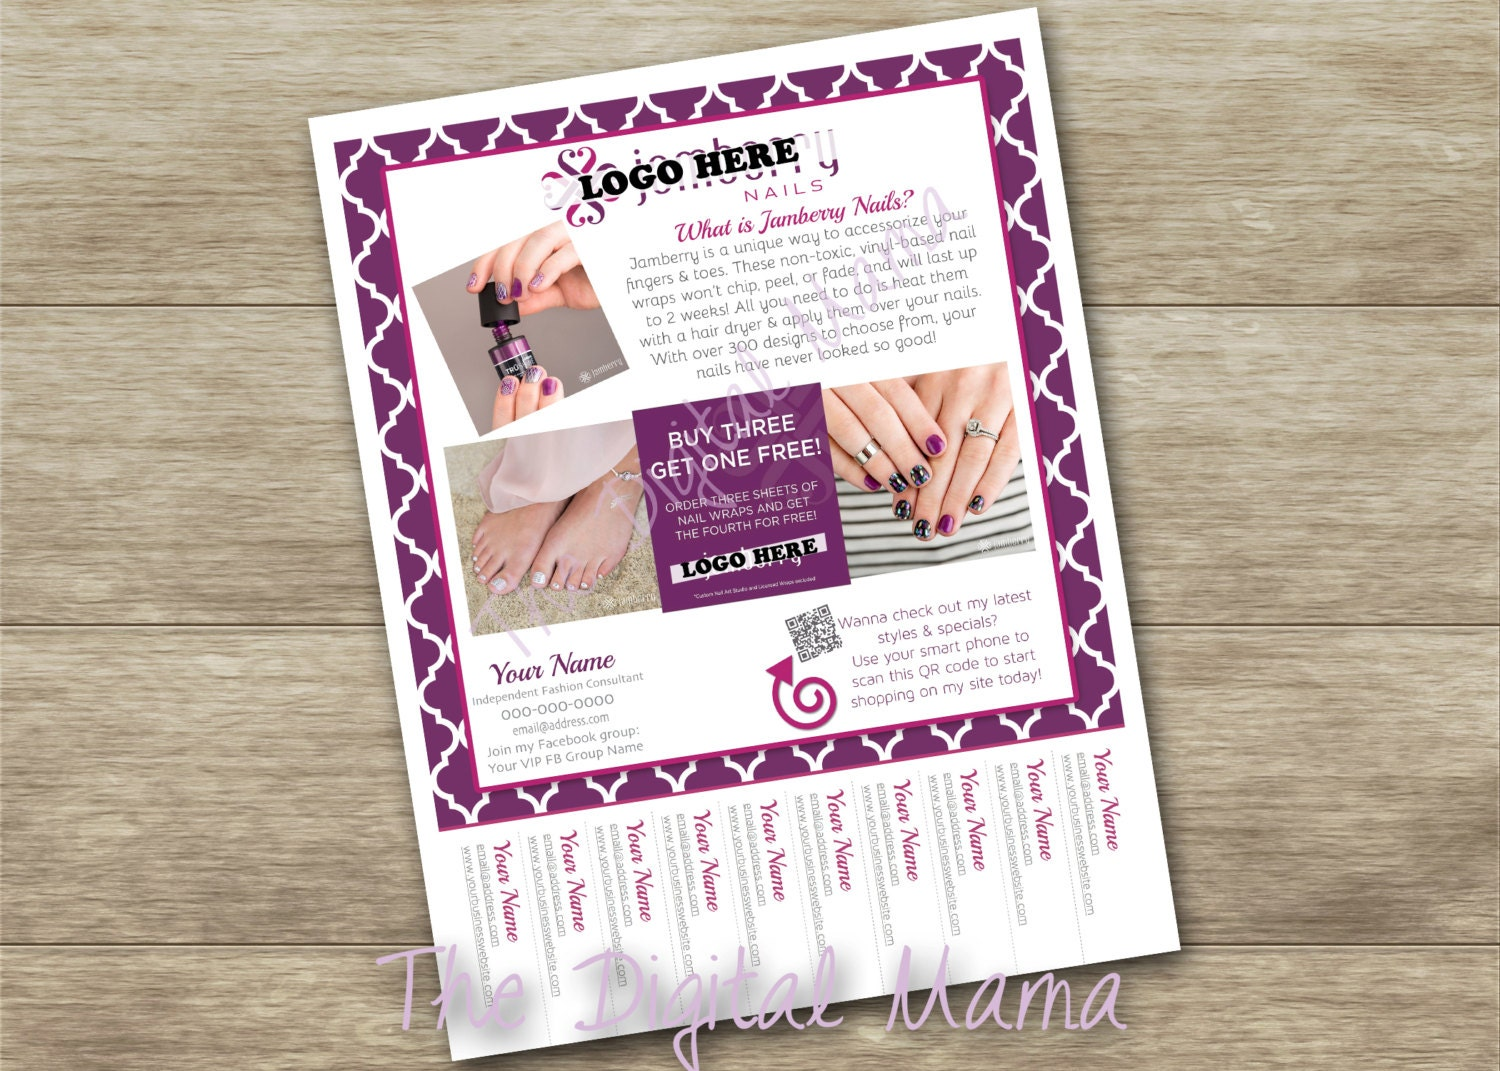 Jamberry Consultant TearOff Flyer Jamberry Tear Tab Flyer – Tear off Tab Flyer